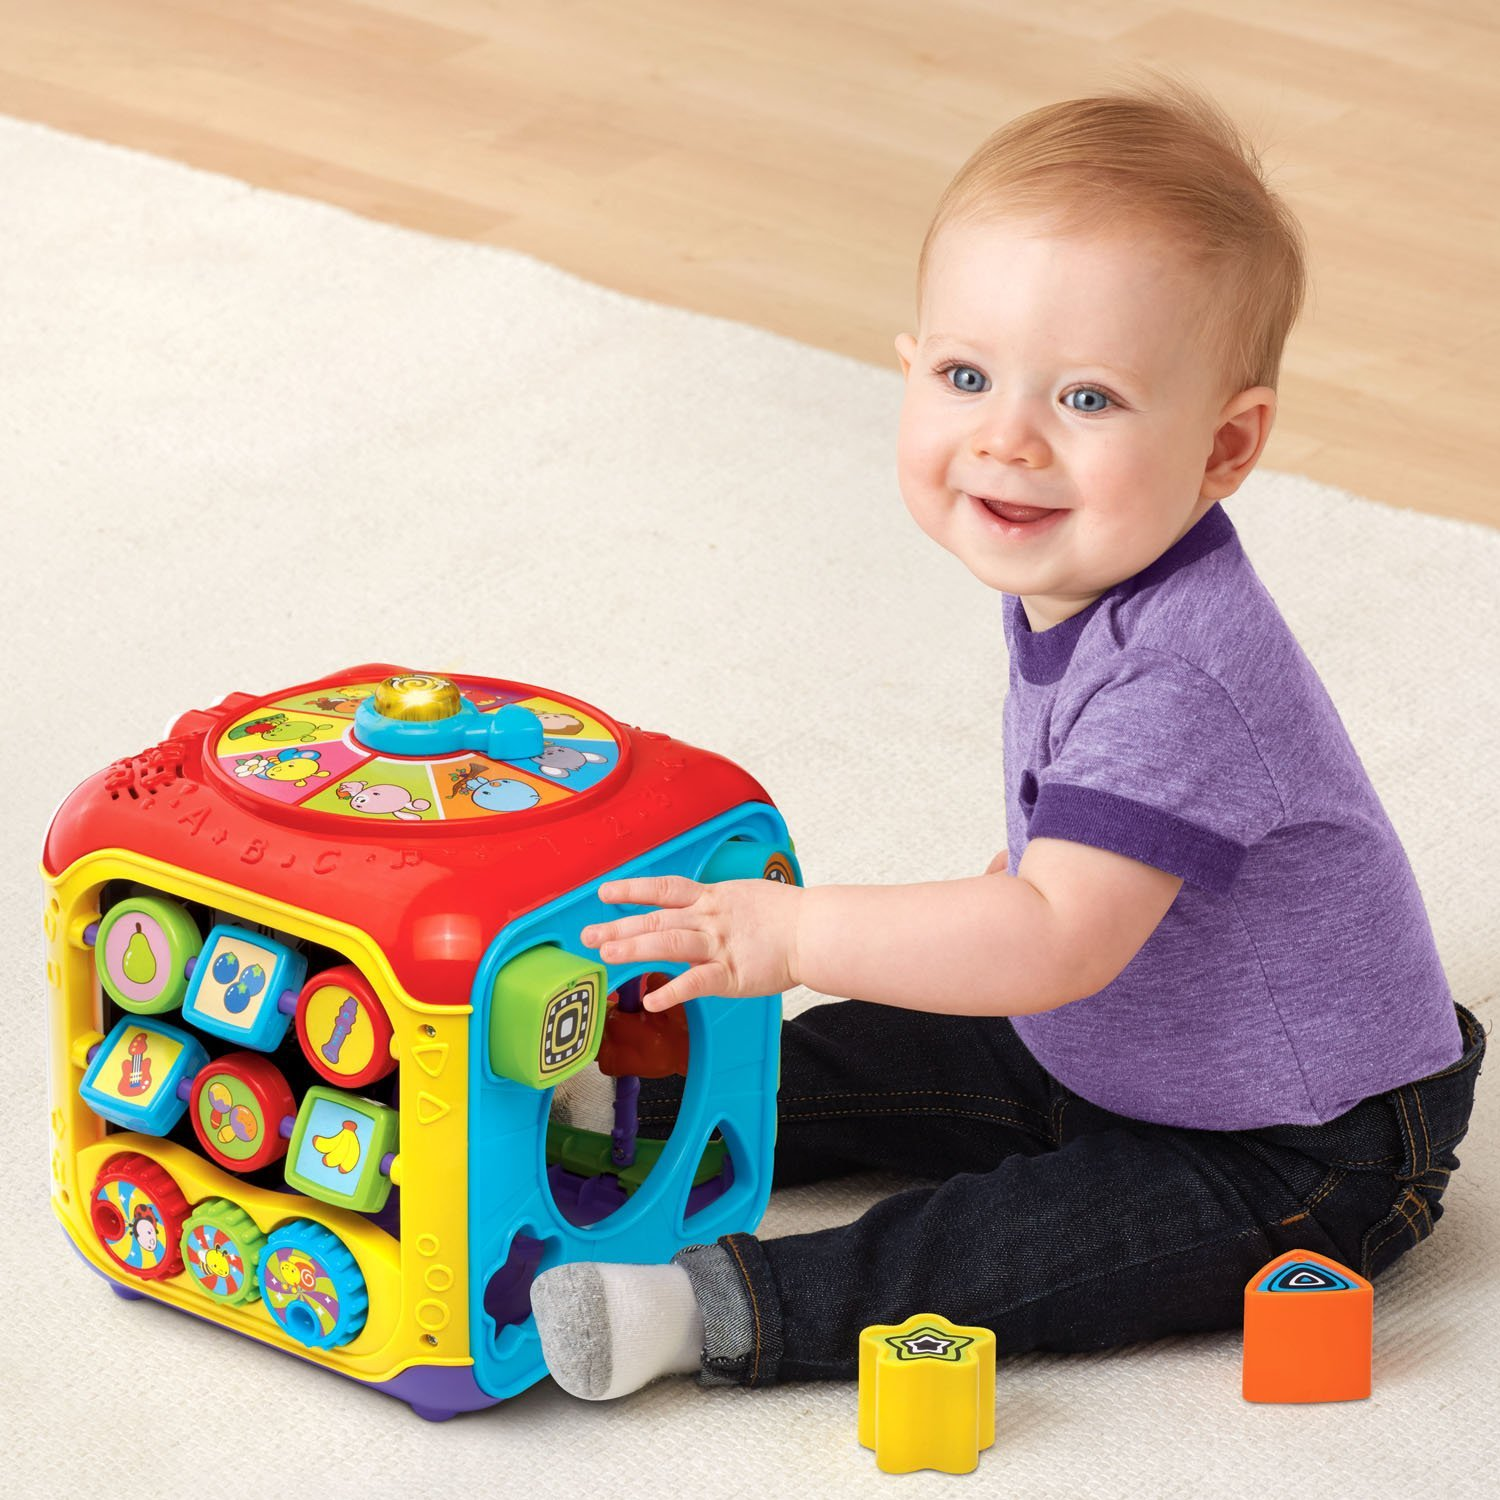 VTech Sort and Discover Activity Cube, Red by VTech (Image #5)